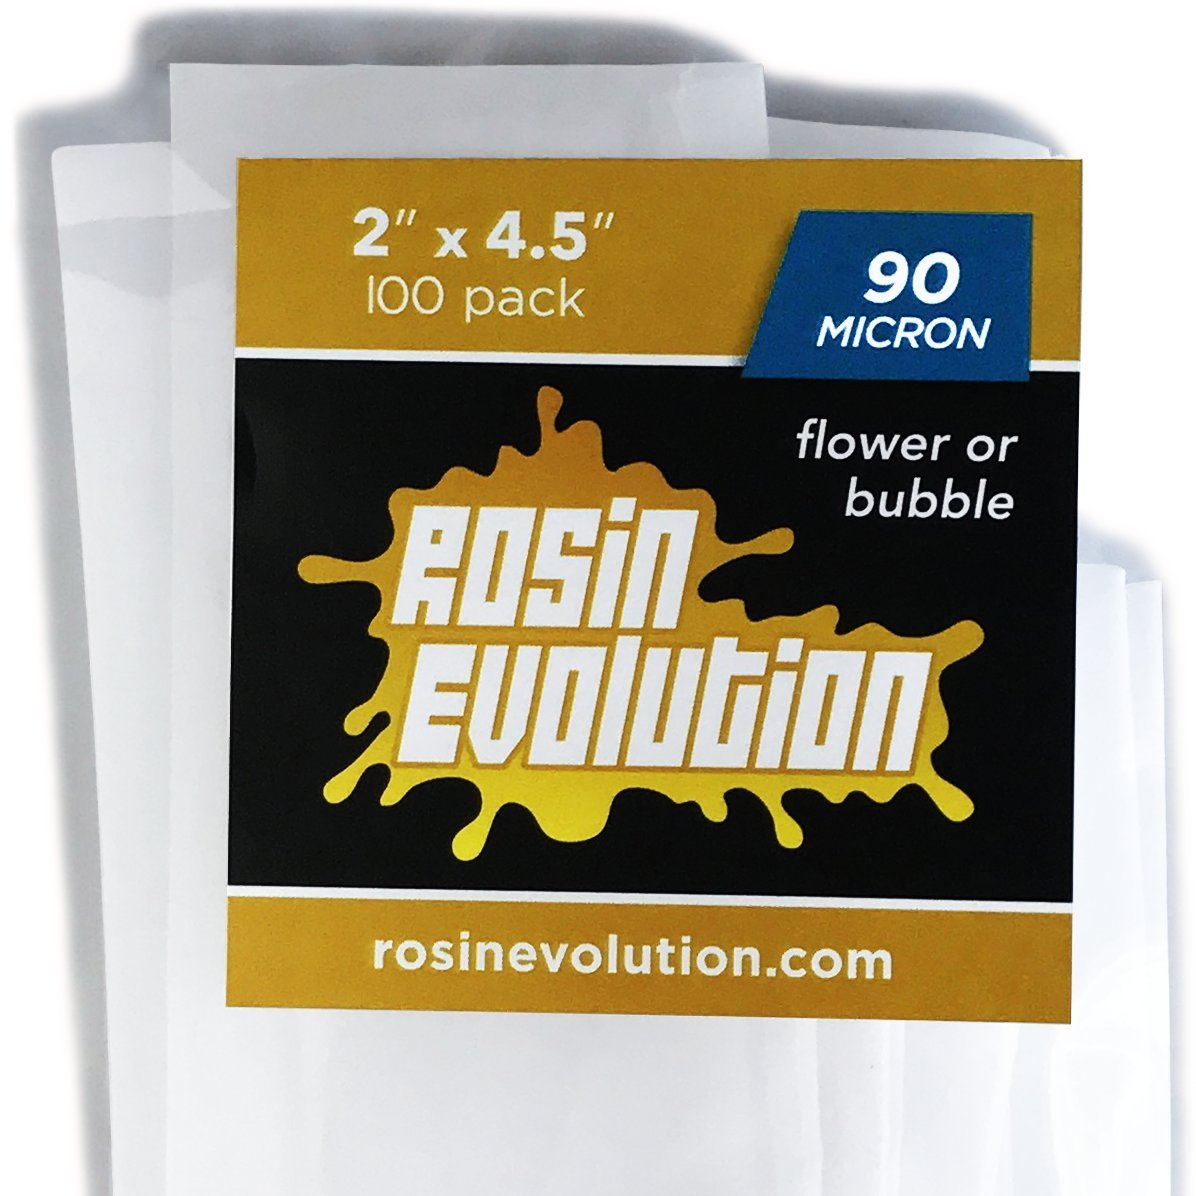 Rosin Evolution Press Bags - 90 micron screens (2'' x 4.5'') - 100 pack by Rosin Evolution